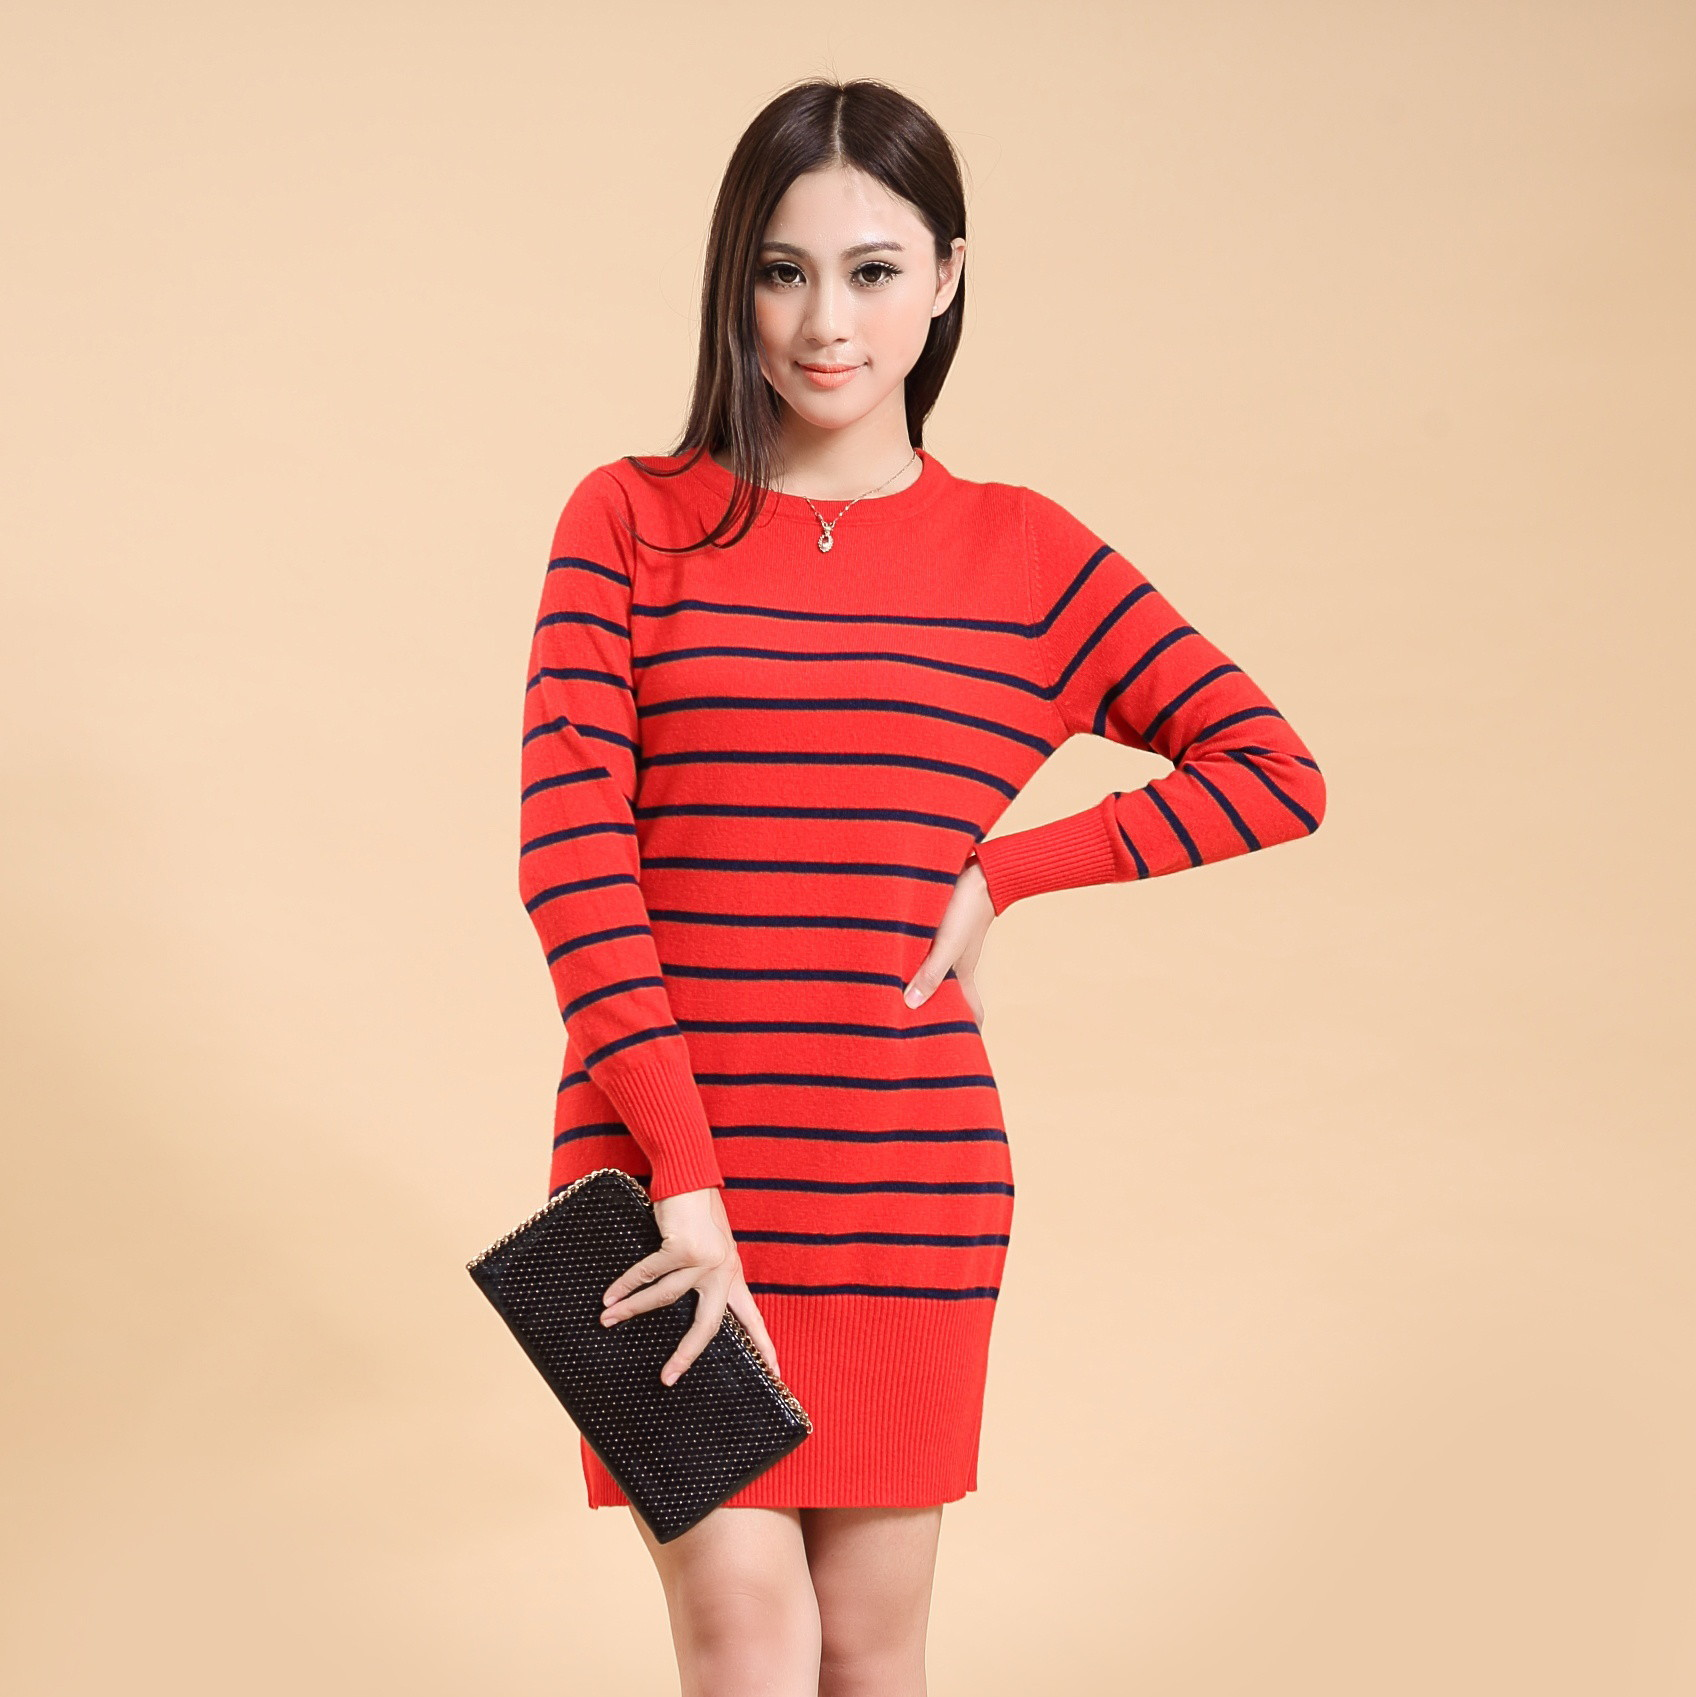 Women's Slimmly red/black stripe Knitted sweater dress